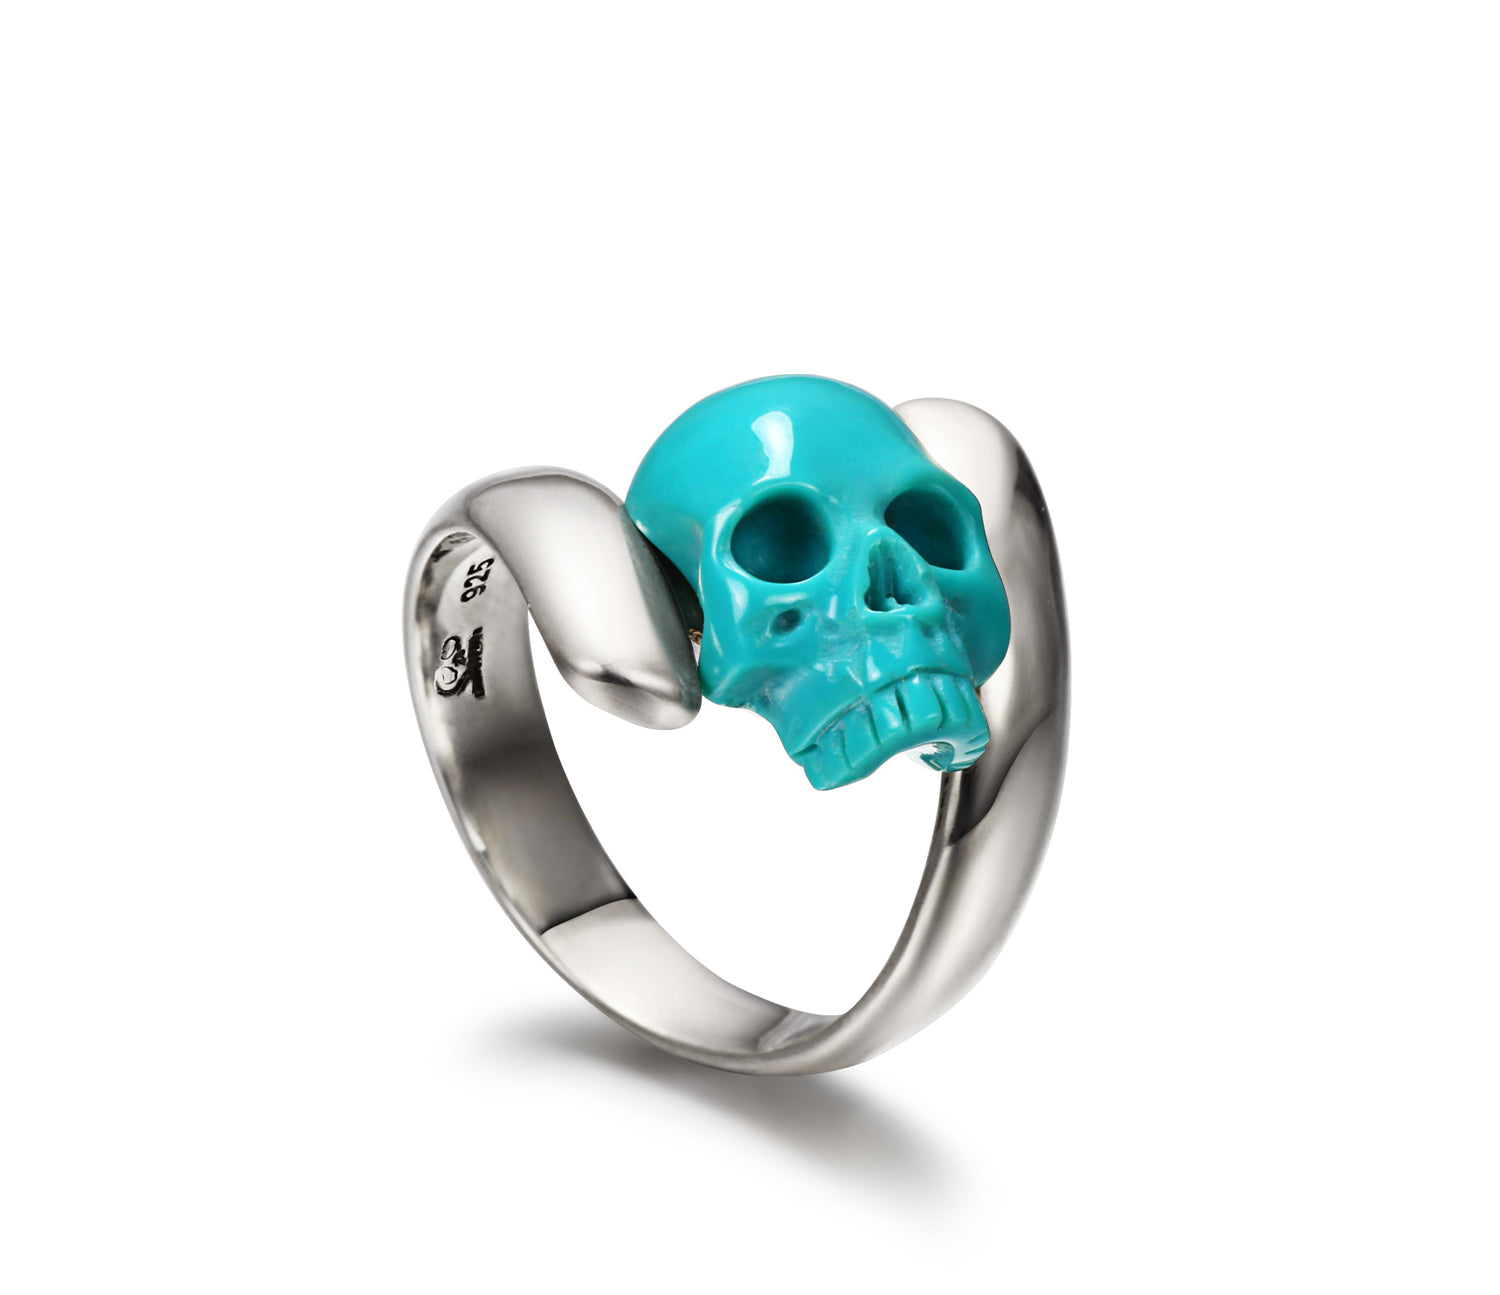 Spiral - Turquoise Carved Gemstone Crystal Skull with Sterling Silver Twist Ring1